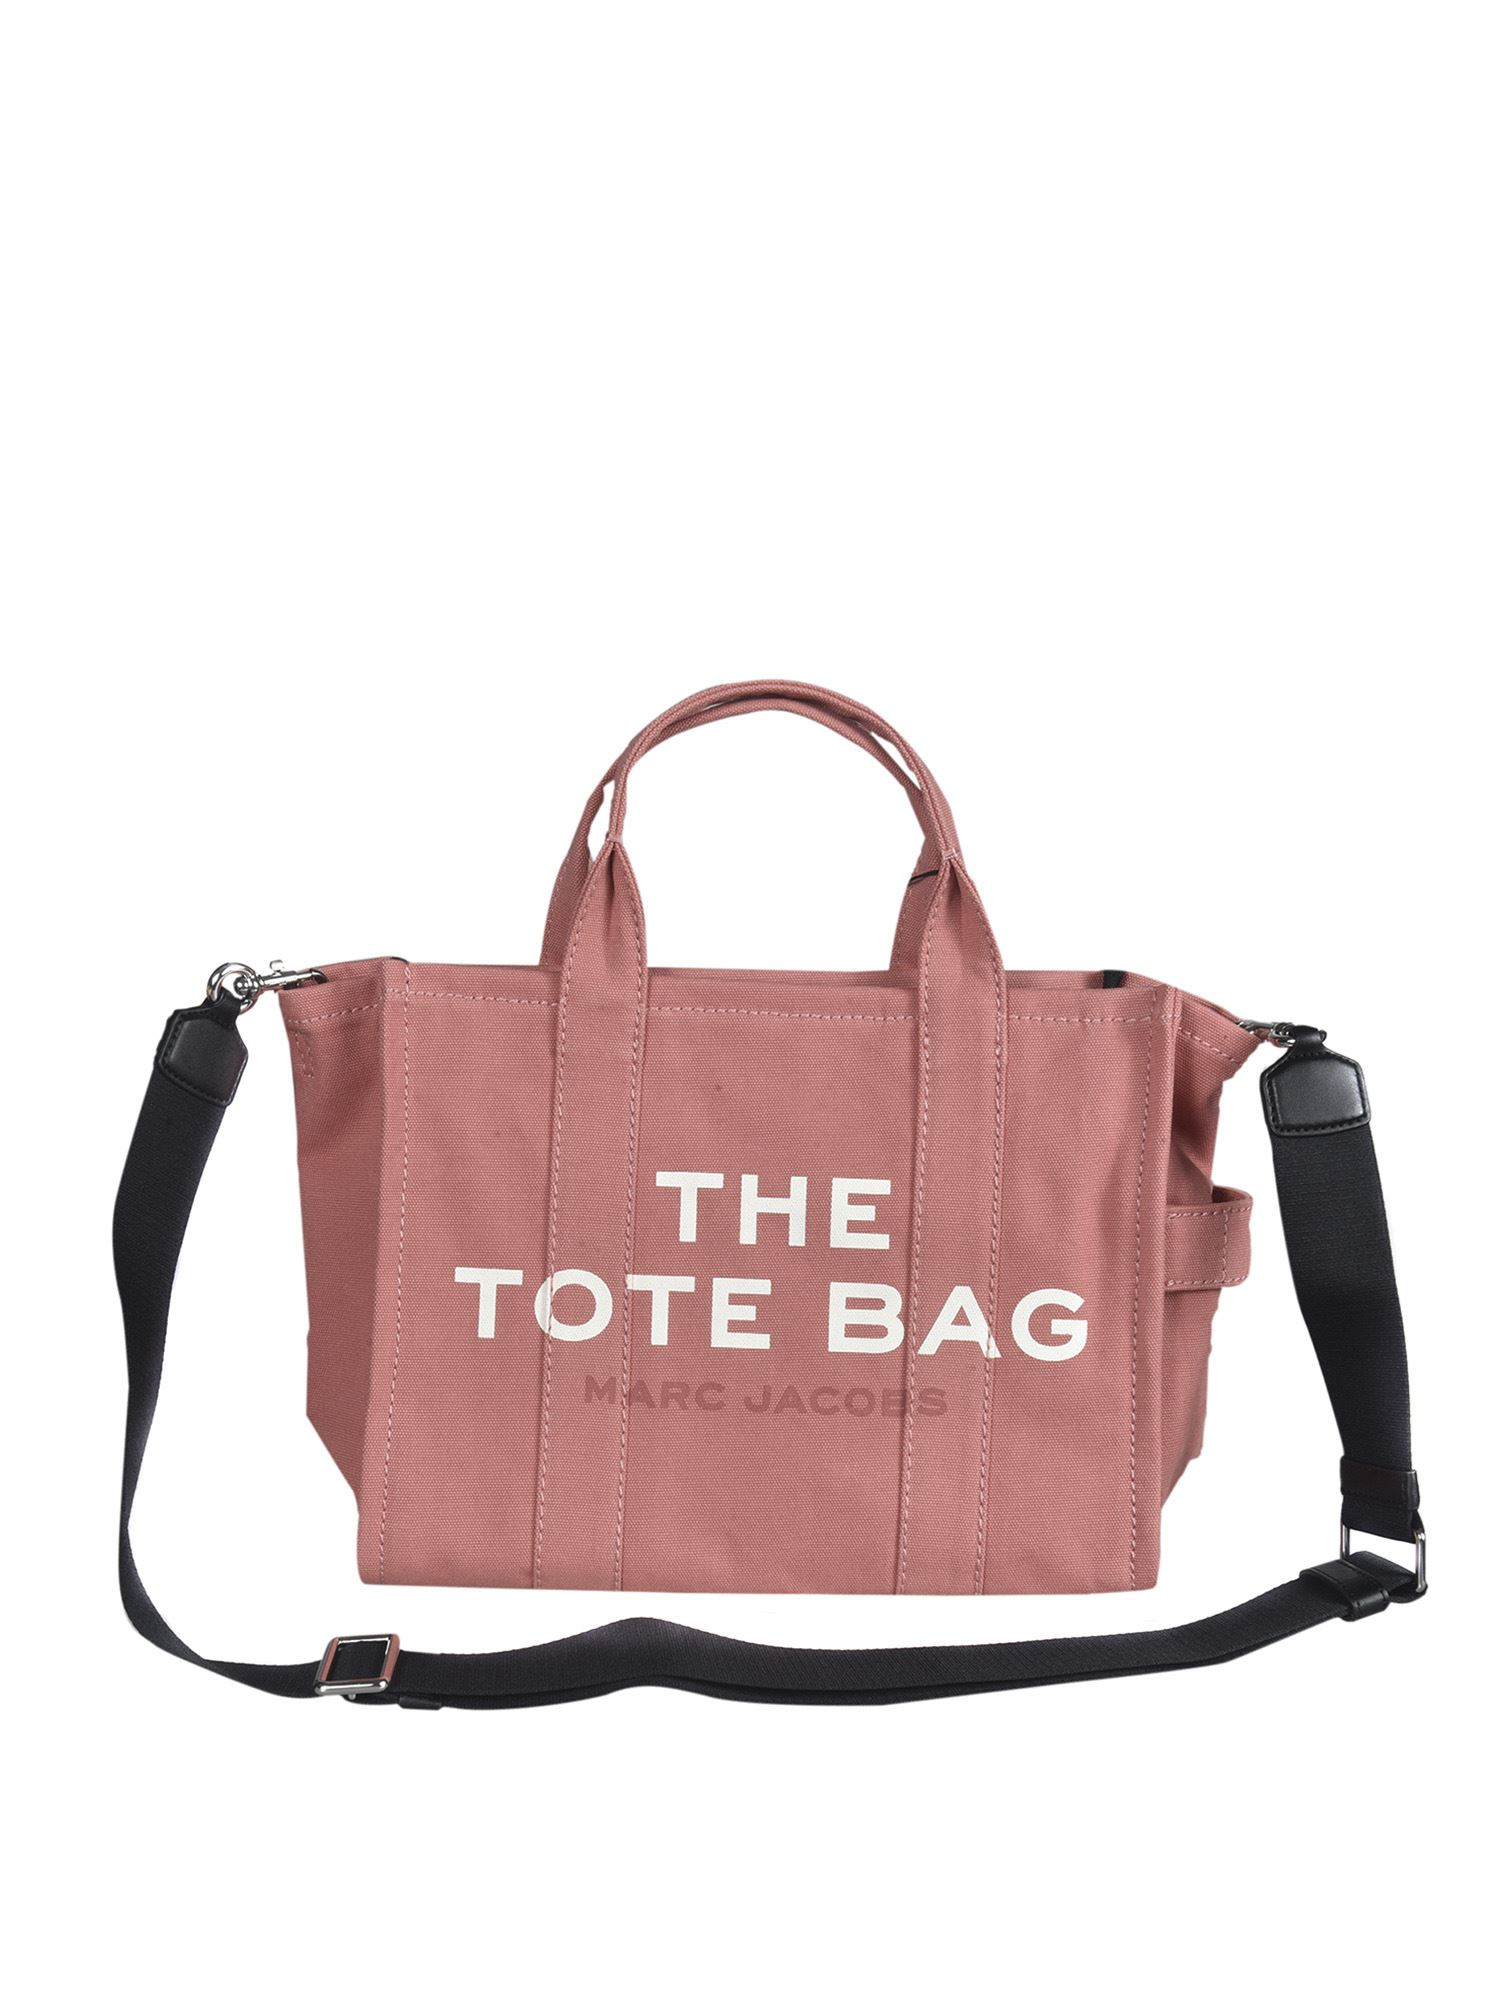 Marc Jacobs THE TRAVELER TOTE BAG IN PINK